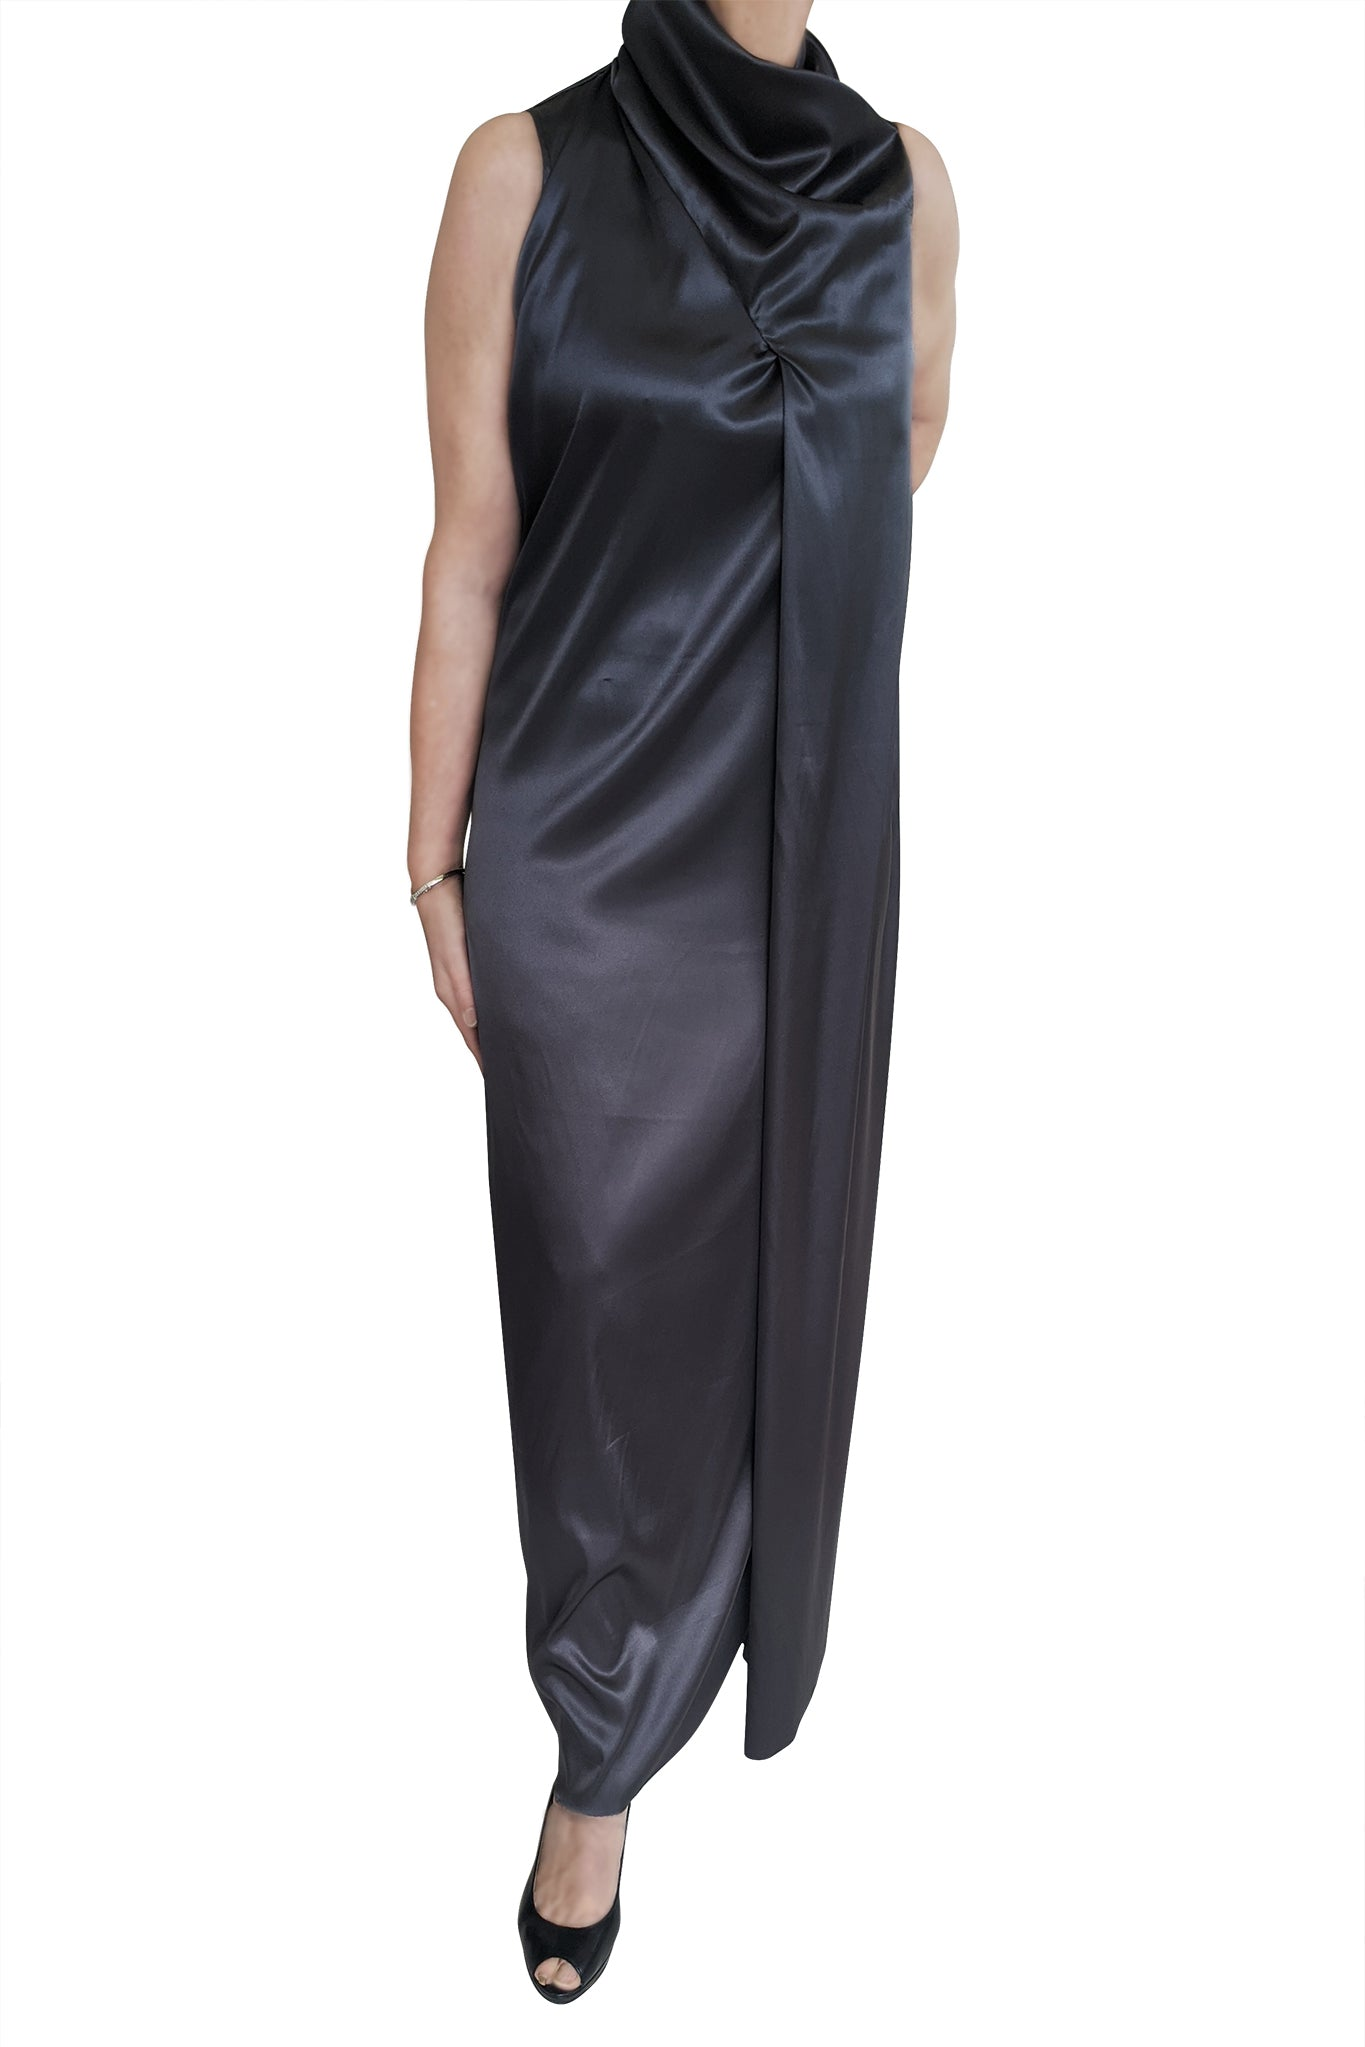 Sublime Dress, Pewter